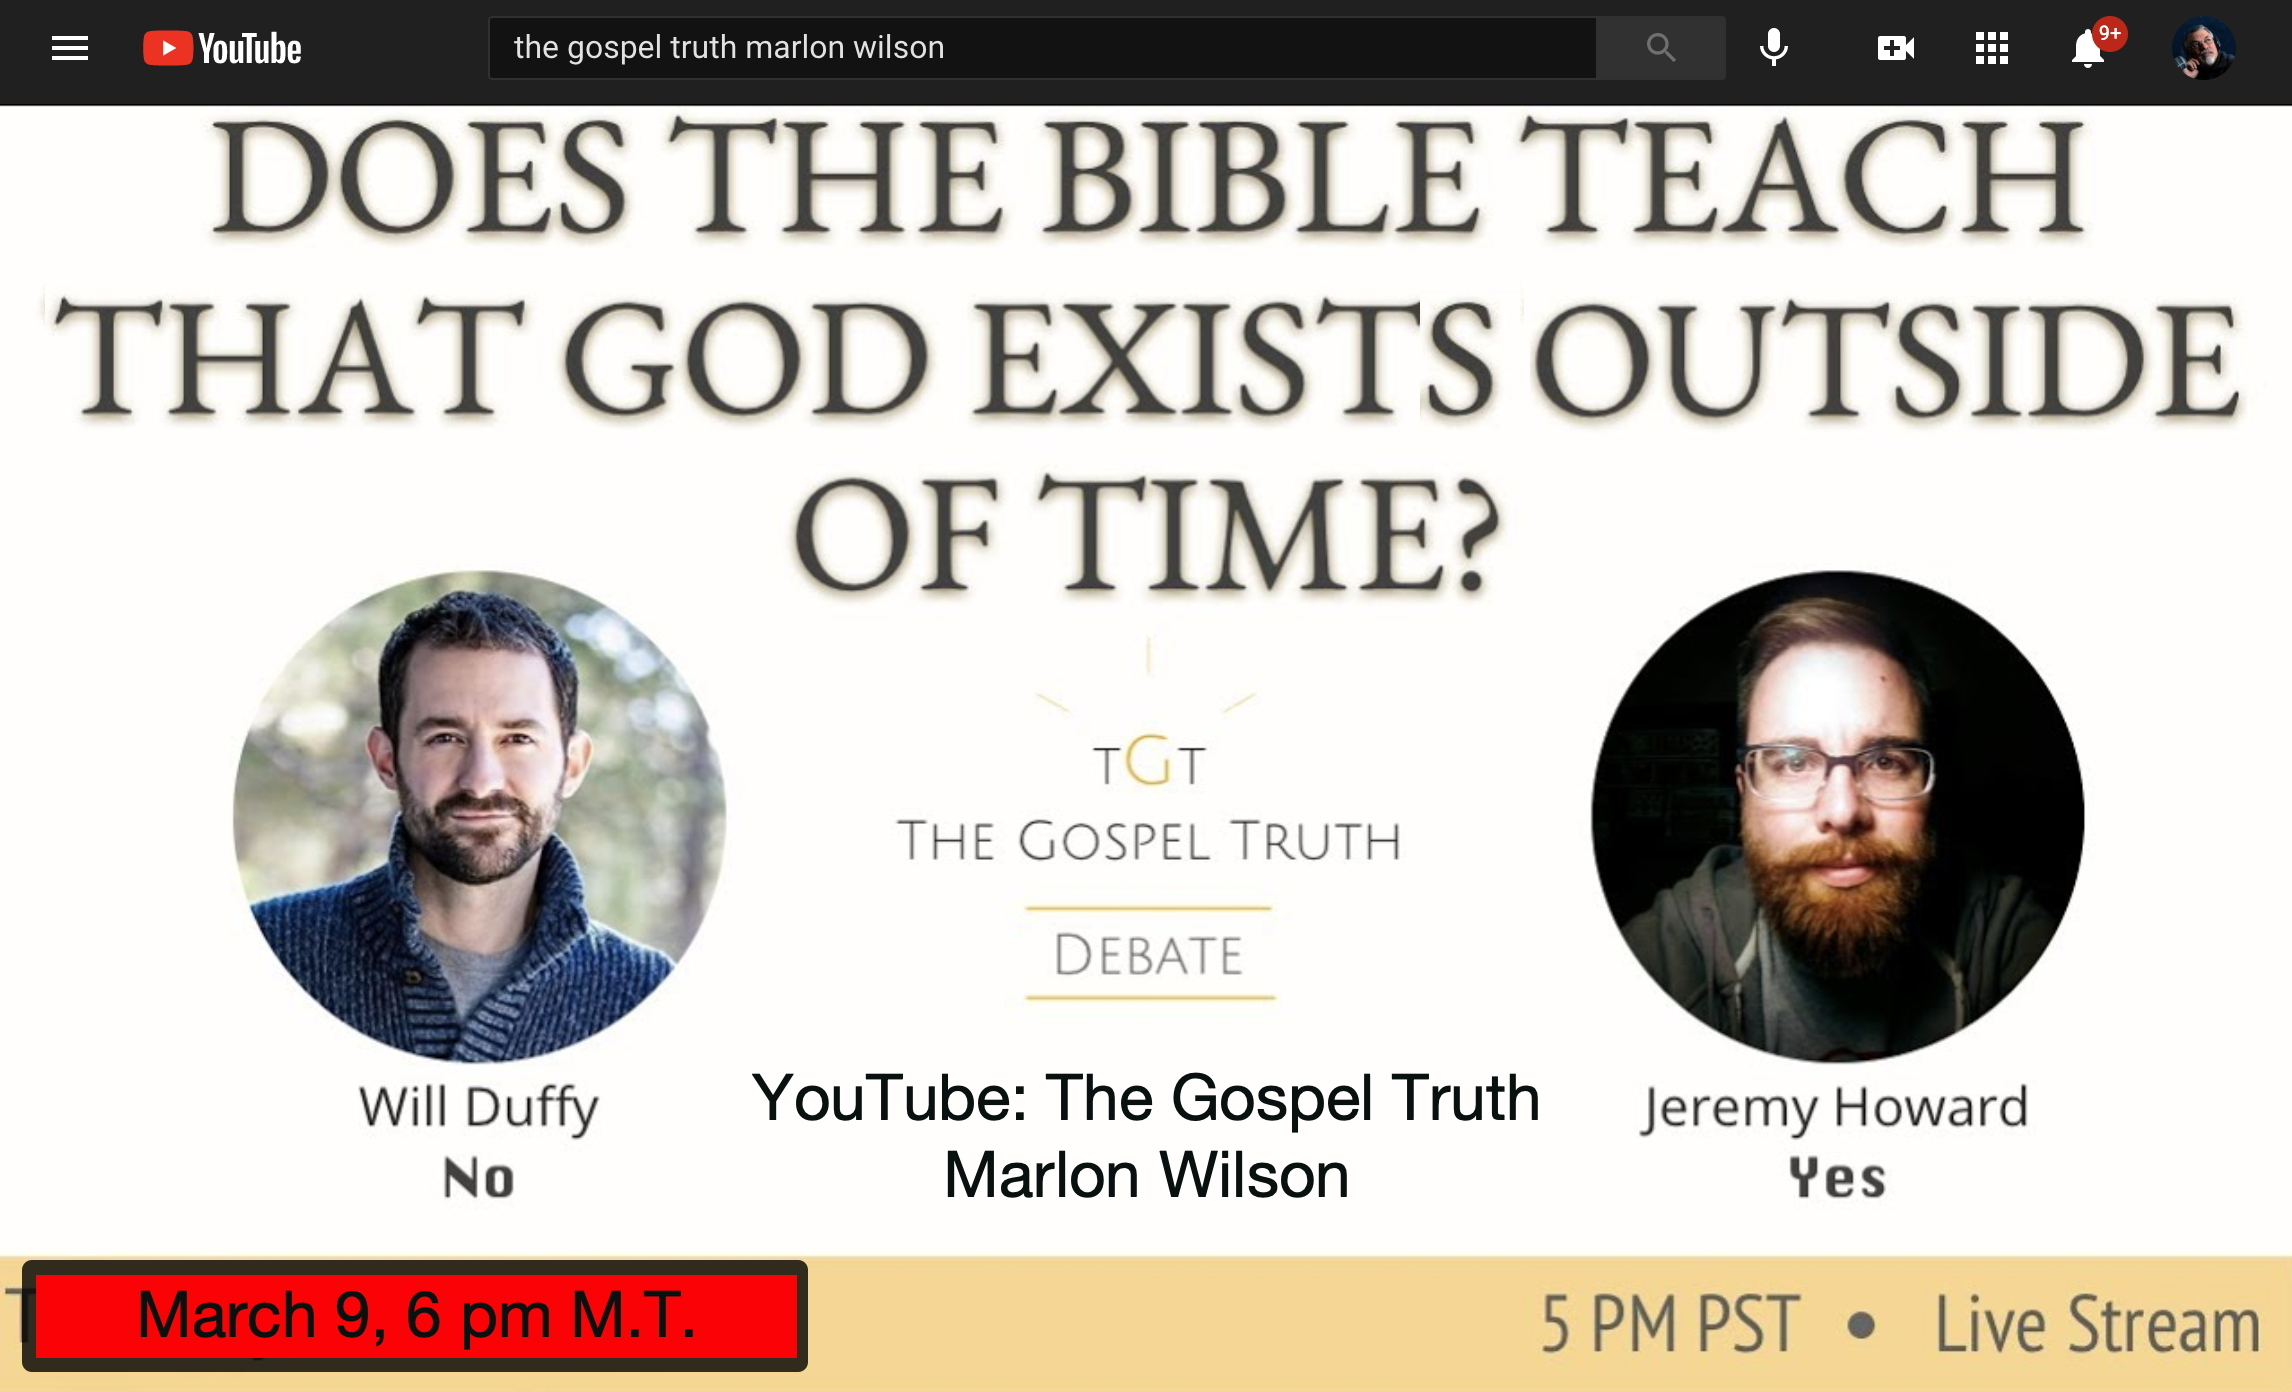 duffy-debate-is-God-outside-of-time.jpg